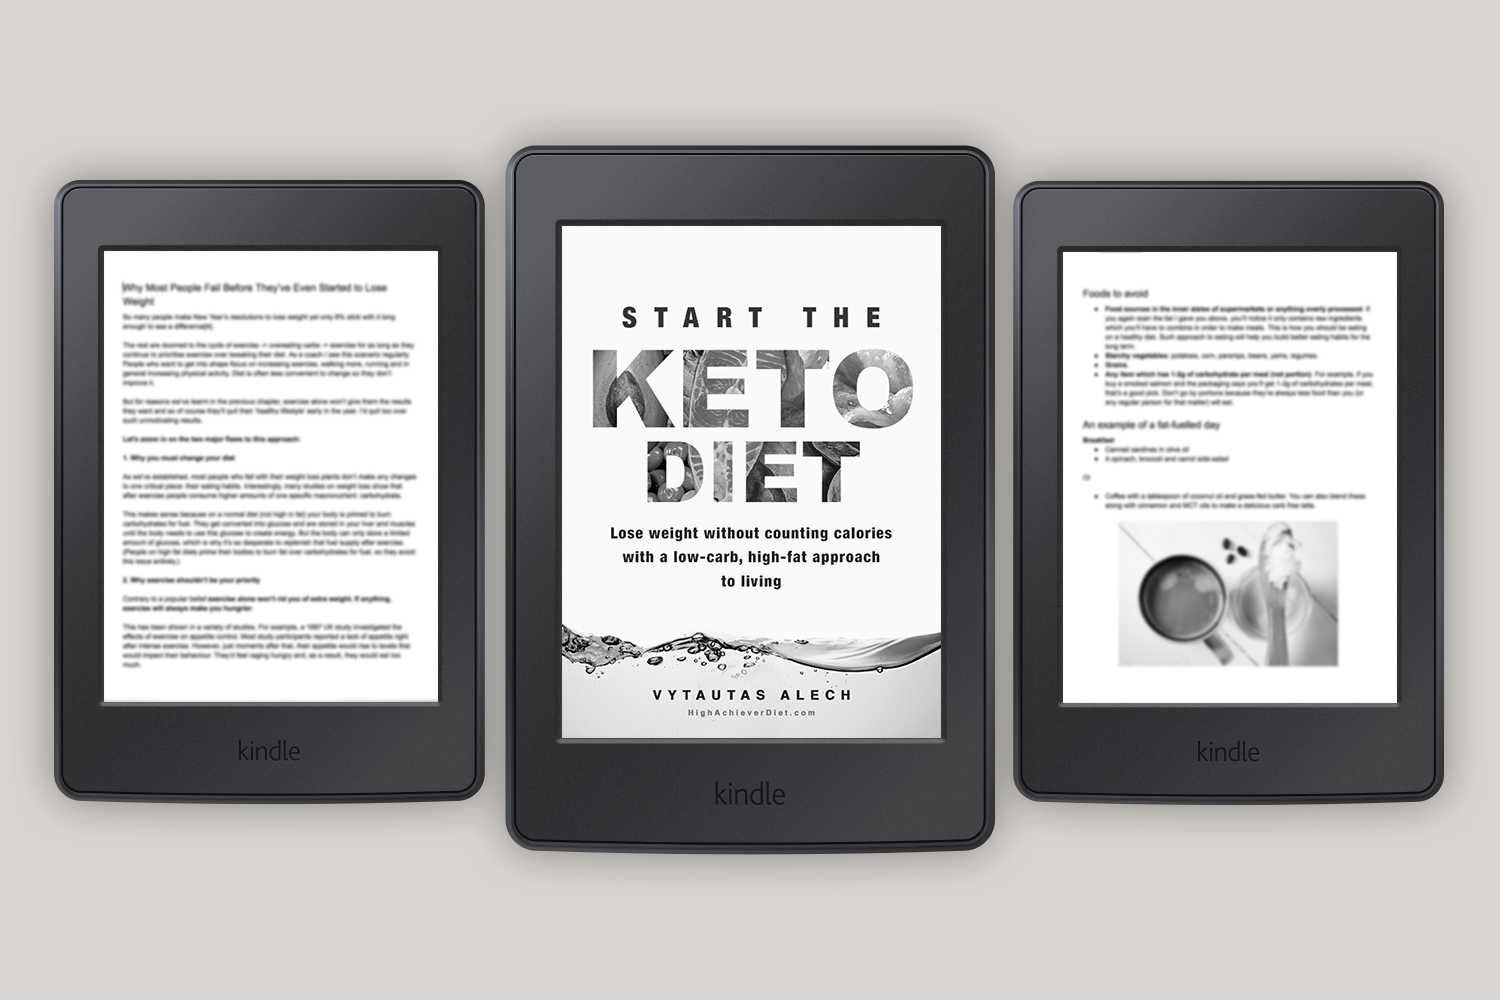 How to Start the Keto Diet – Low-Carb, High-Fat for the Best Weightloss Results